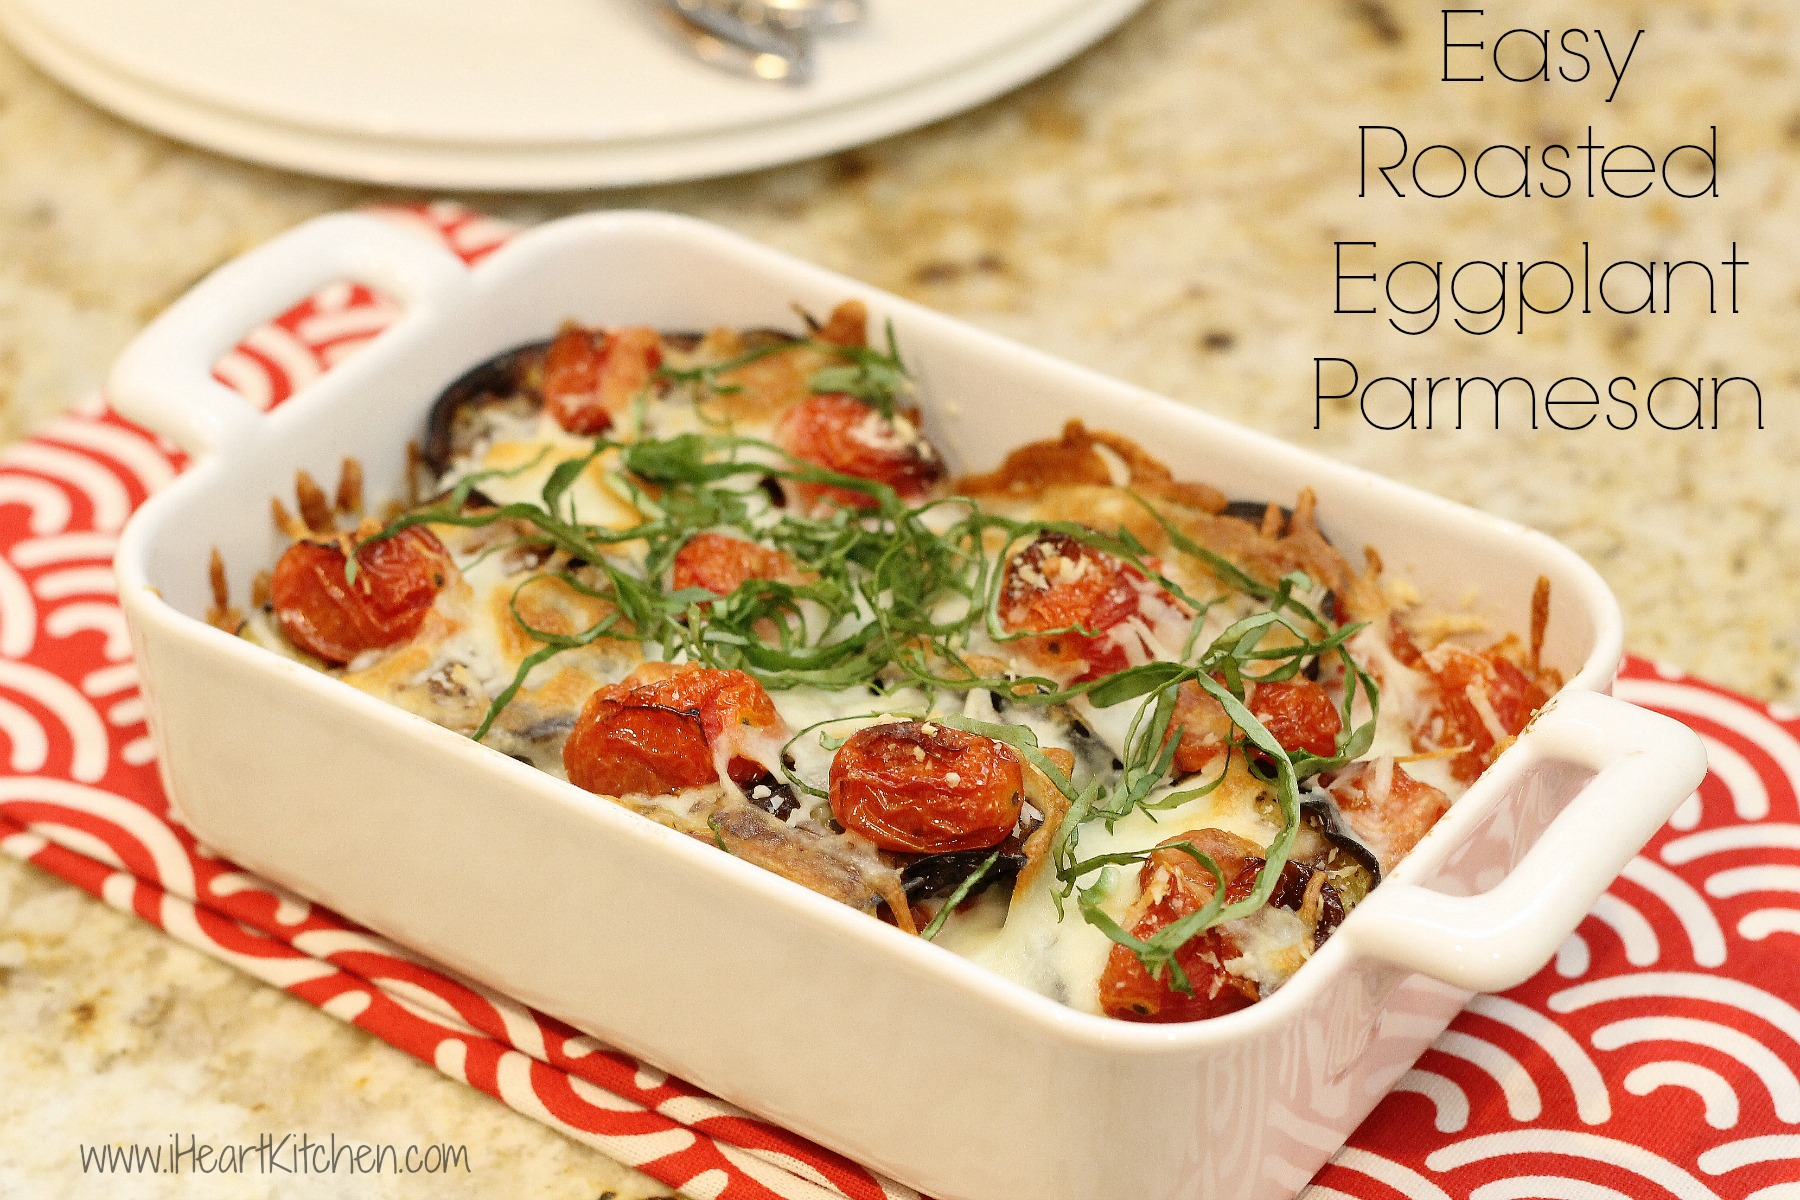 Easy Roasted Eggplant Parmesan